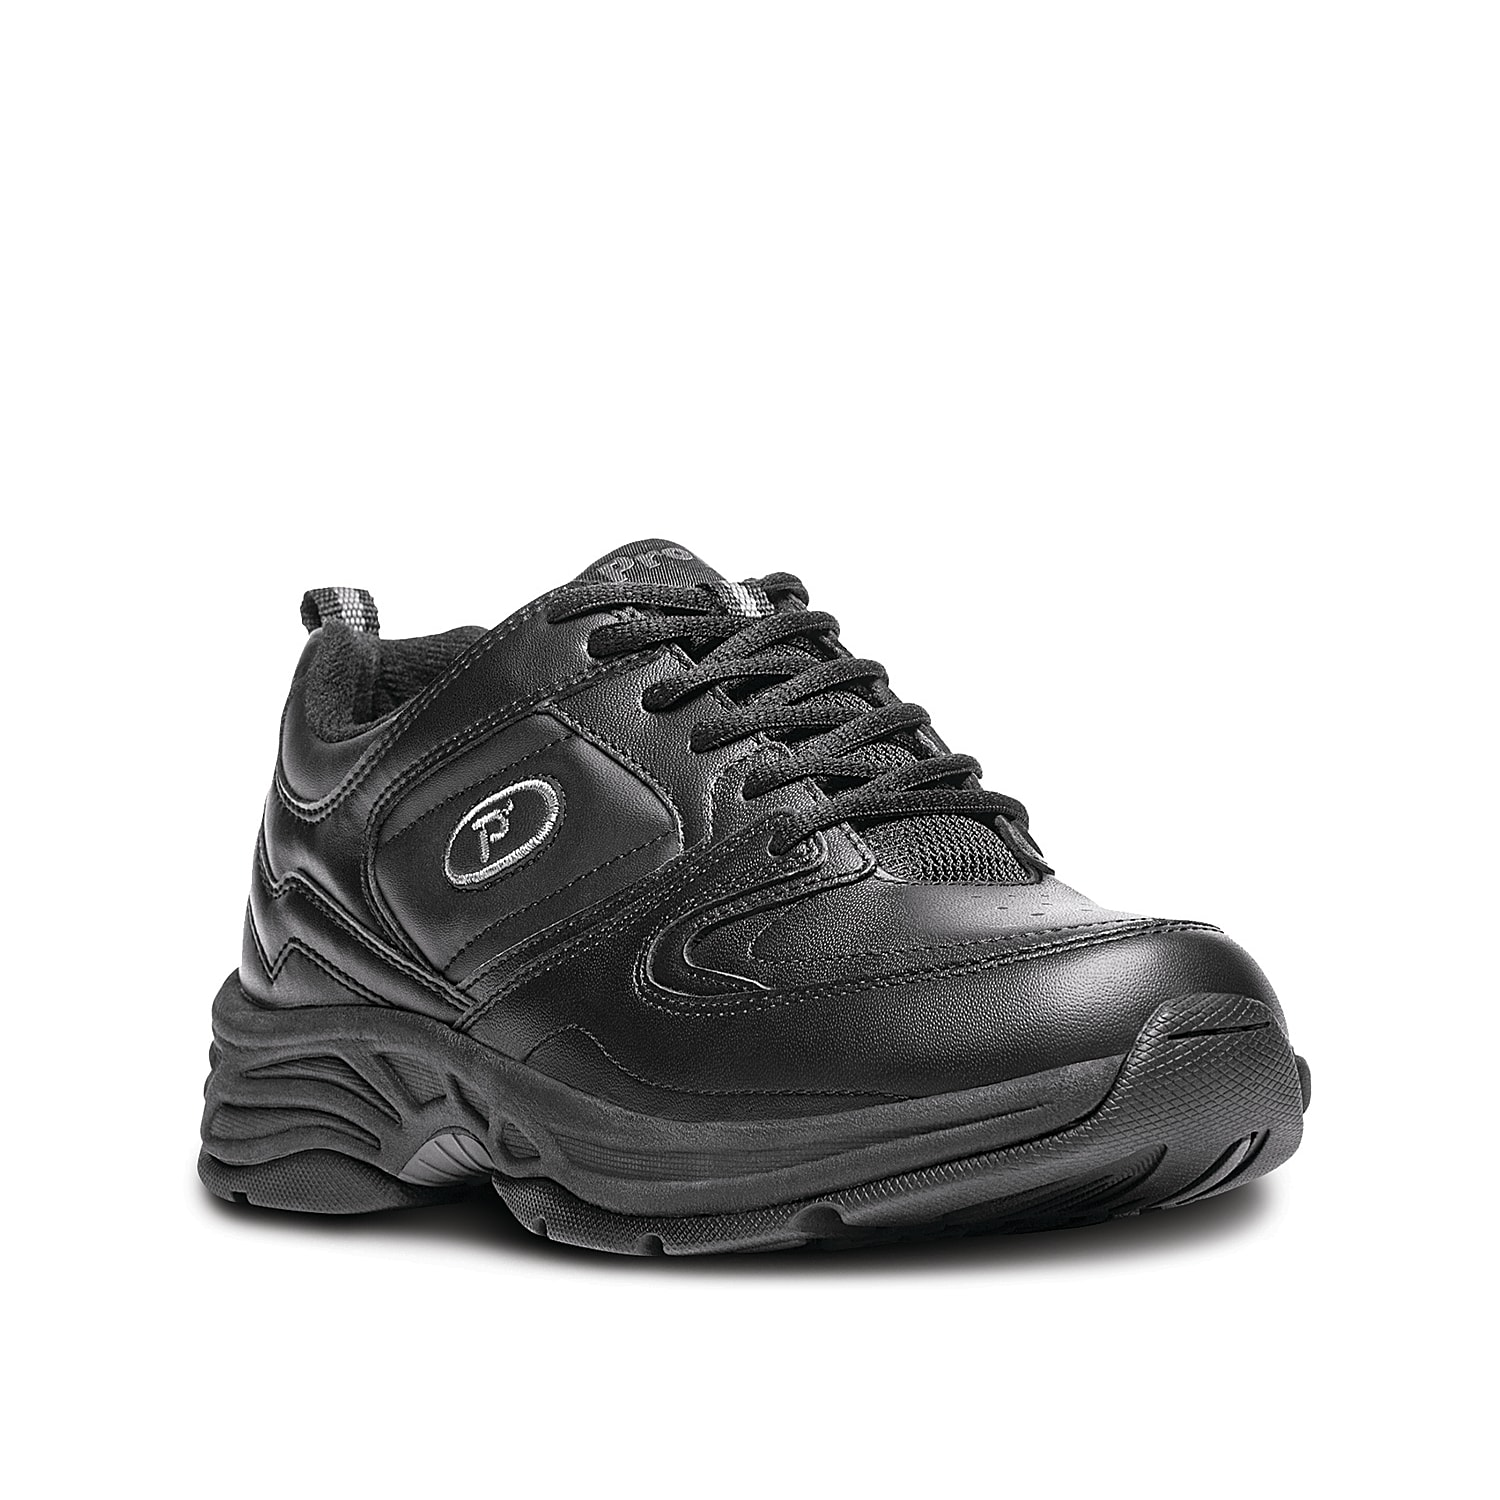 Lace up this contemporary athletic walking shoe--the perfect fit for everyday wear. The double foot bed accommodates extra volume or custom orthotics. And the combination of our cushioned rubber outsole and memory foam insole means hours of comfort wherever you wander.